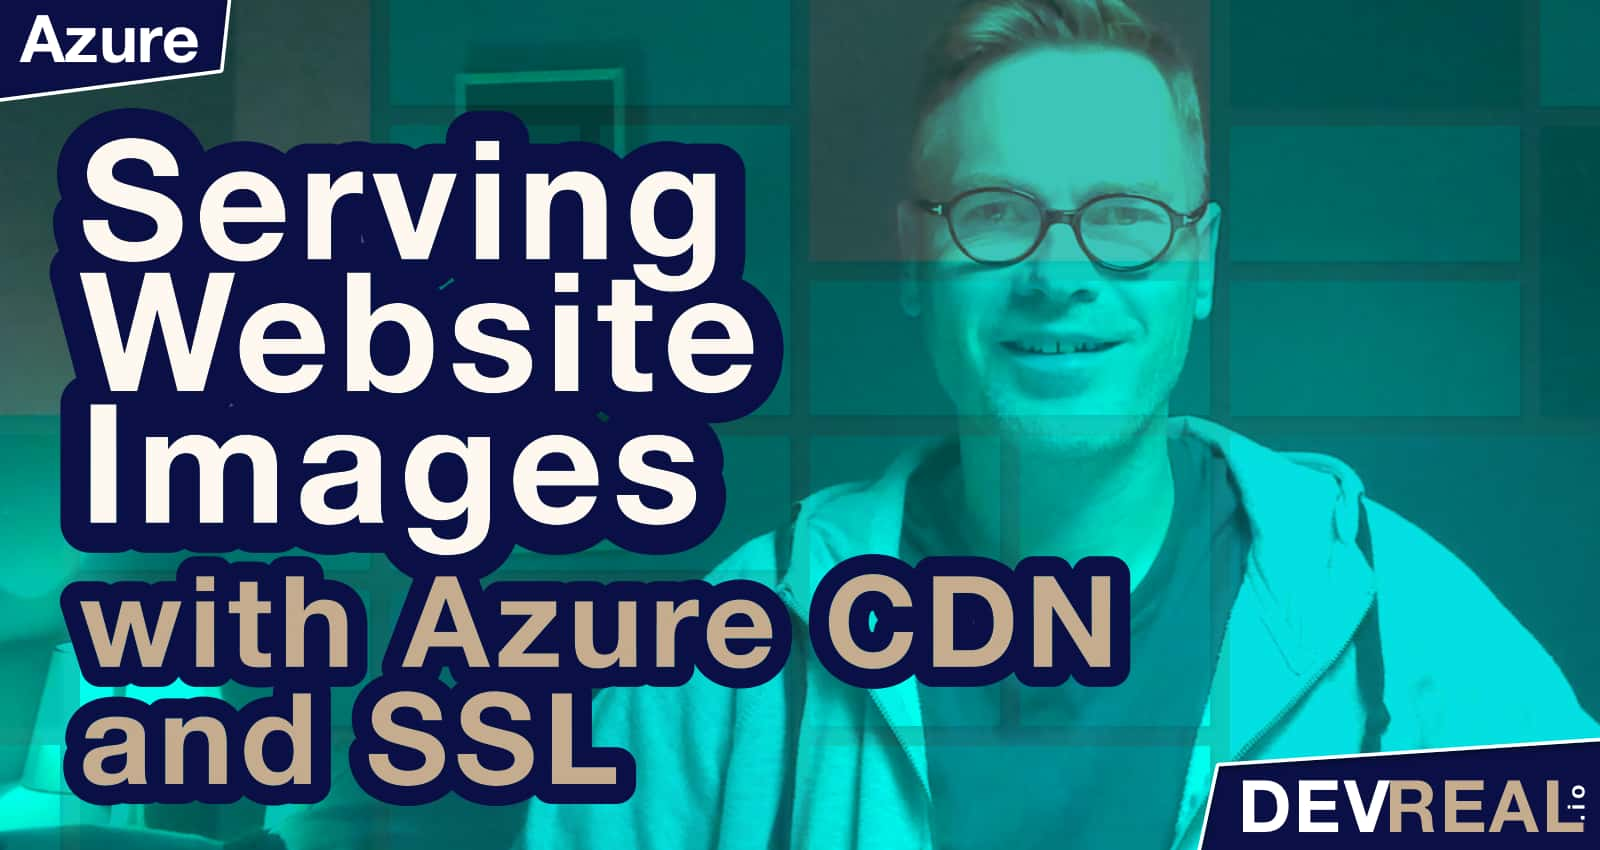 Serving Website Images from Azure CDN with SSL